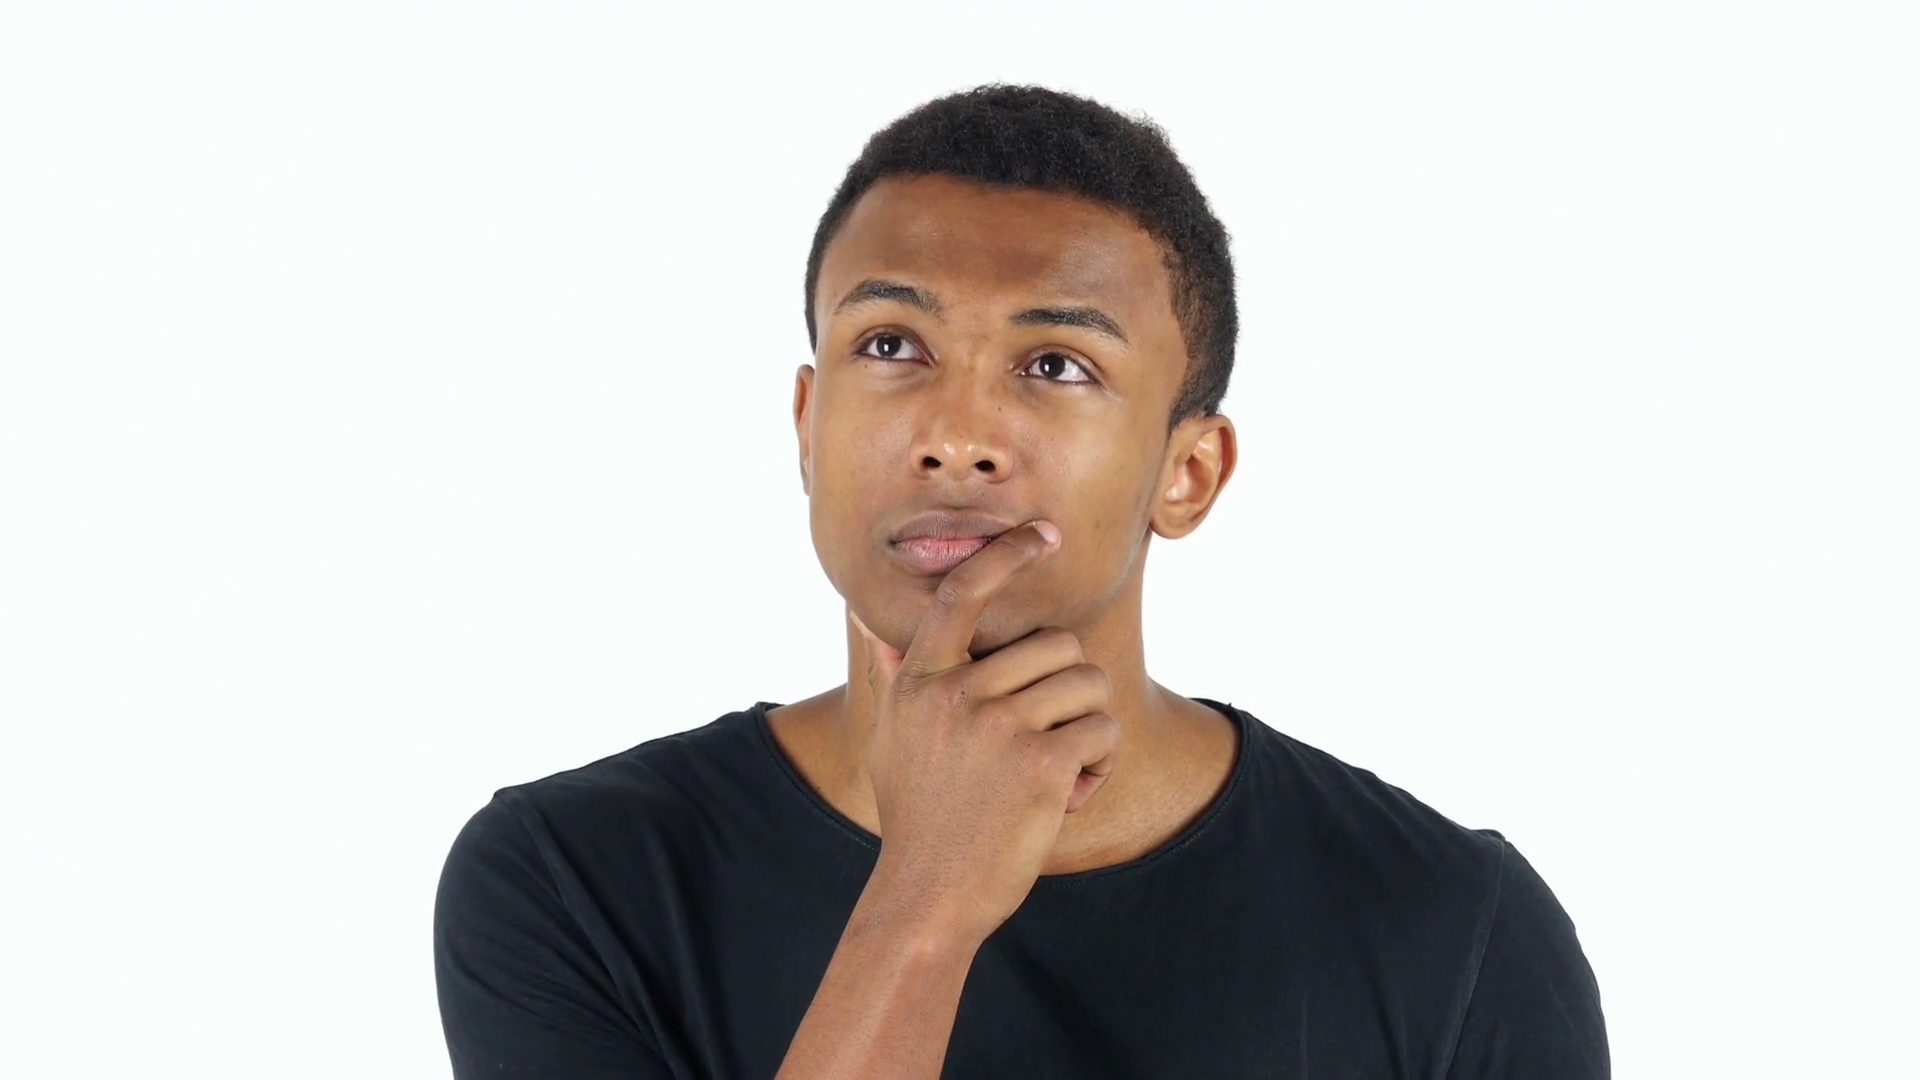 young black man pensively thinking about whether or not to move out